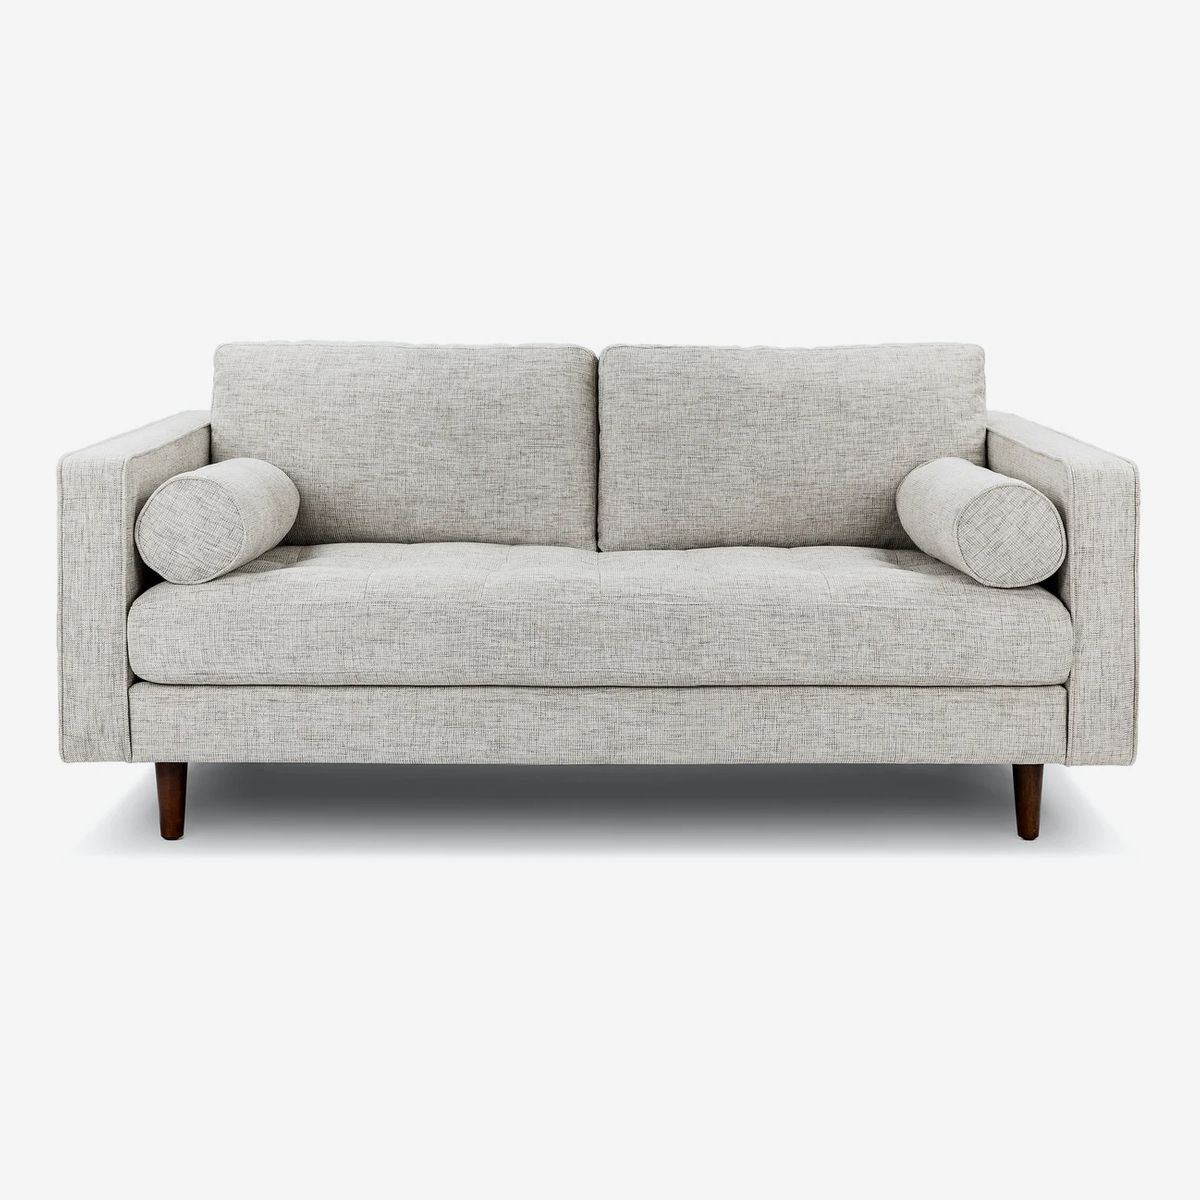 The Best Cheap Couches Under 1 000 Plus A Few Under 700 The Strategist New York Magazine